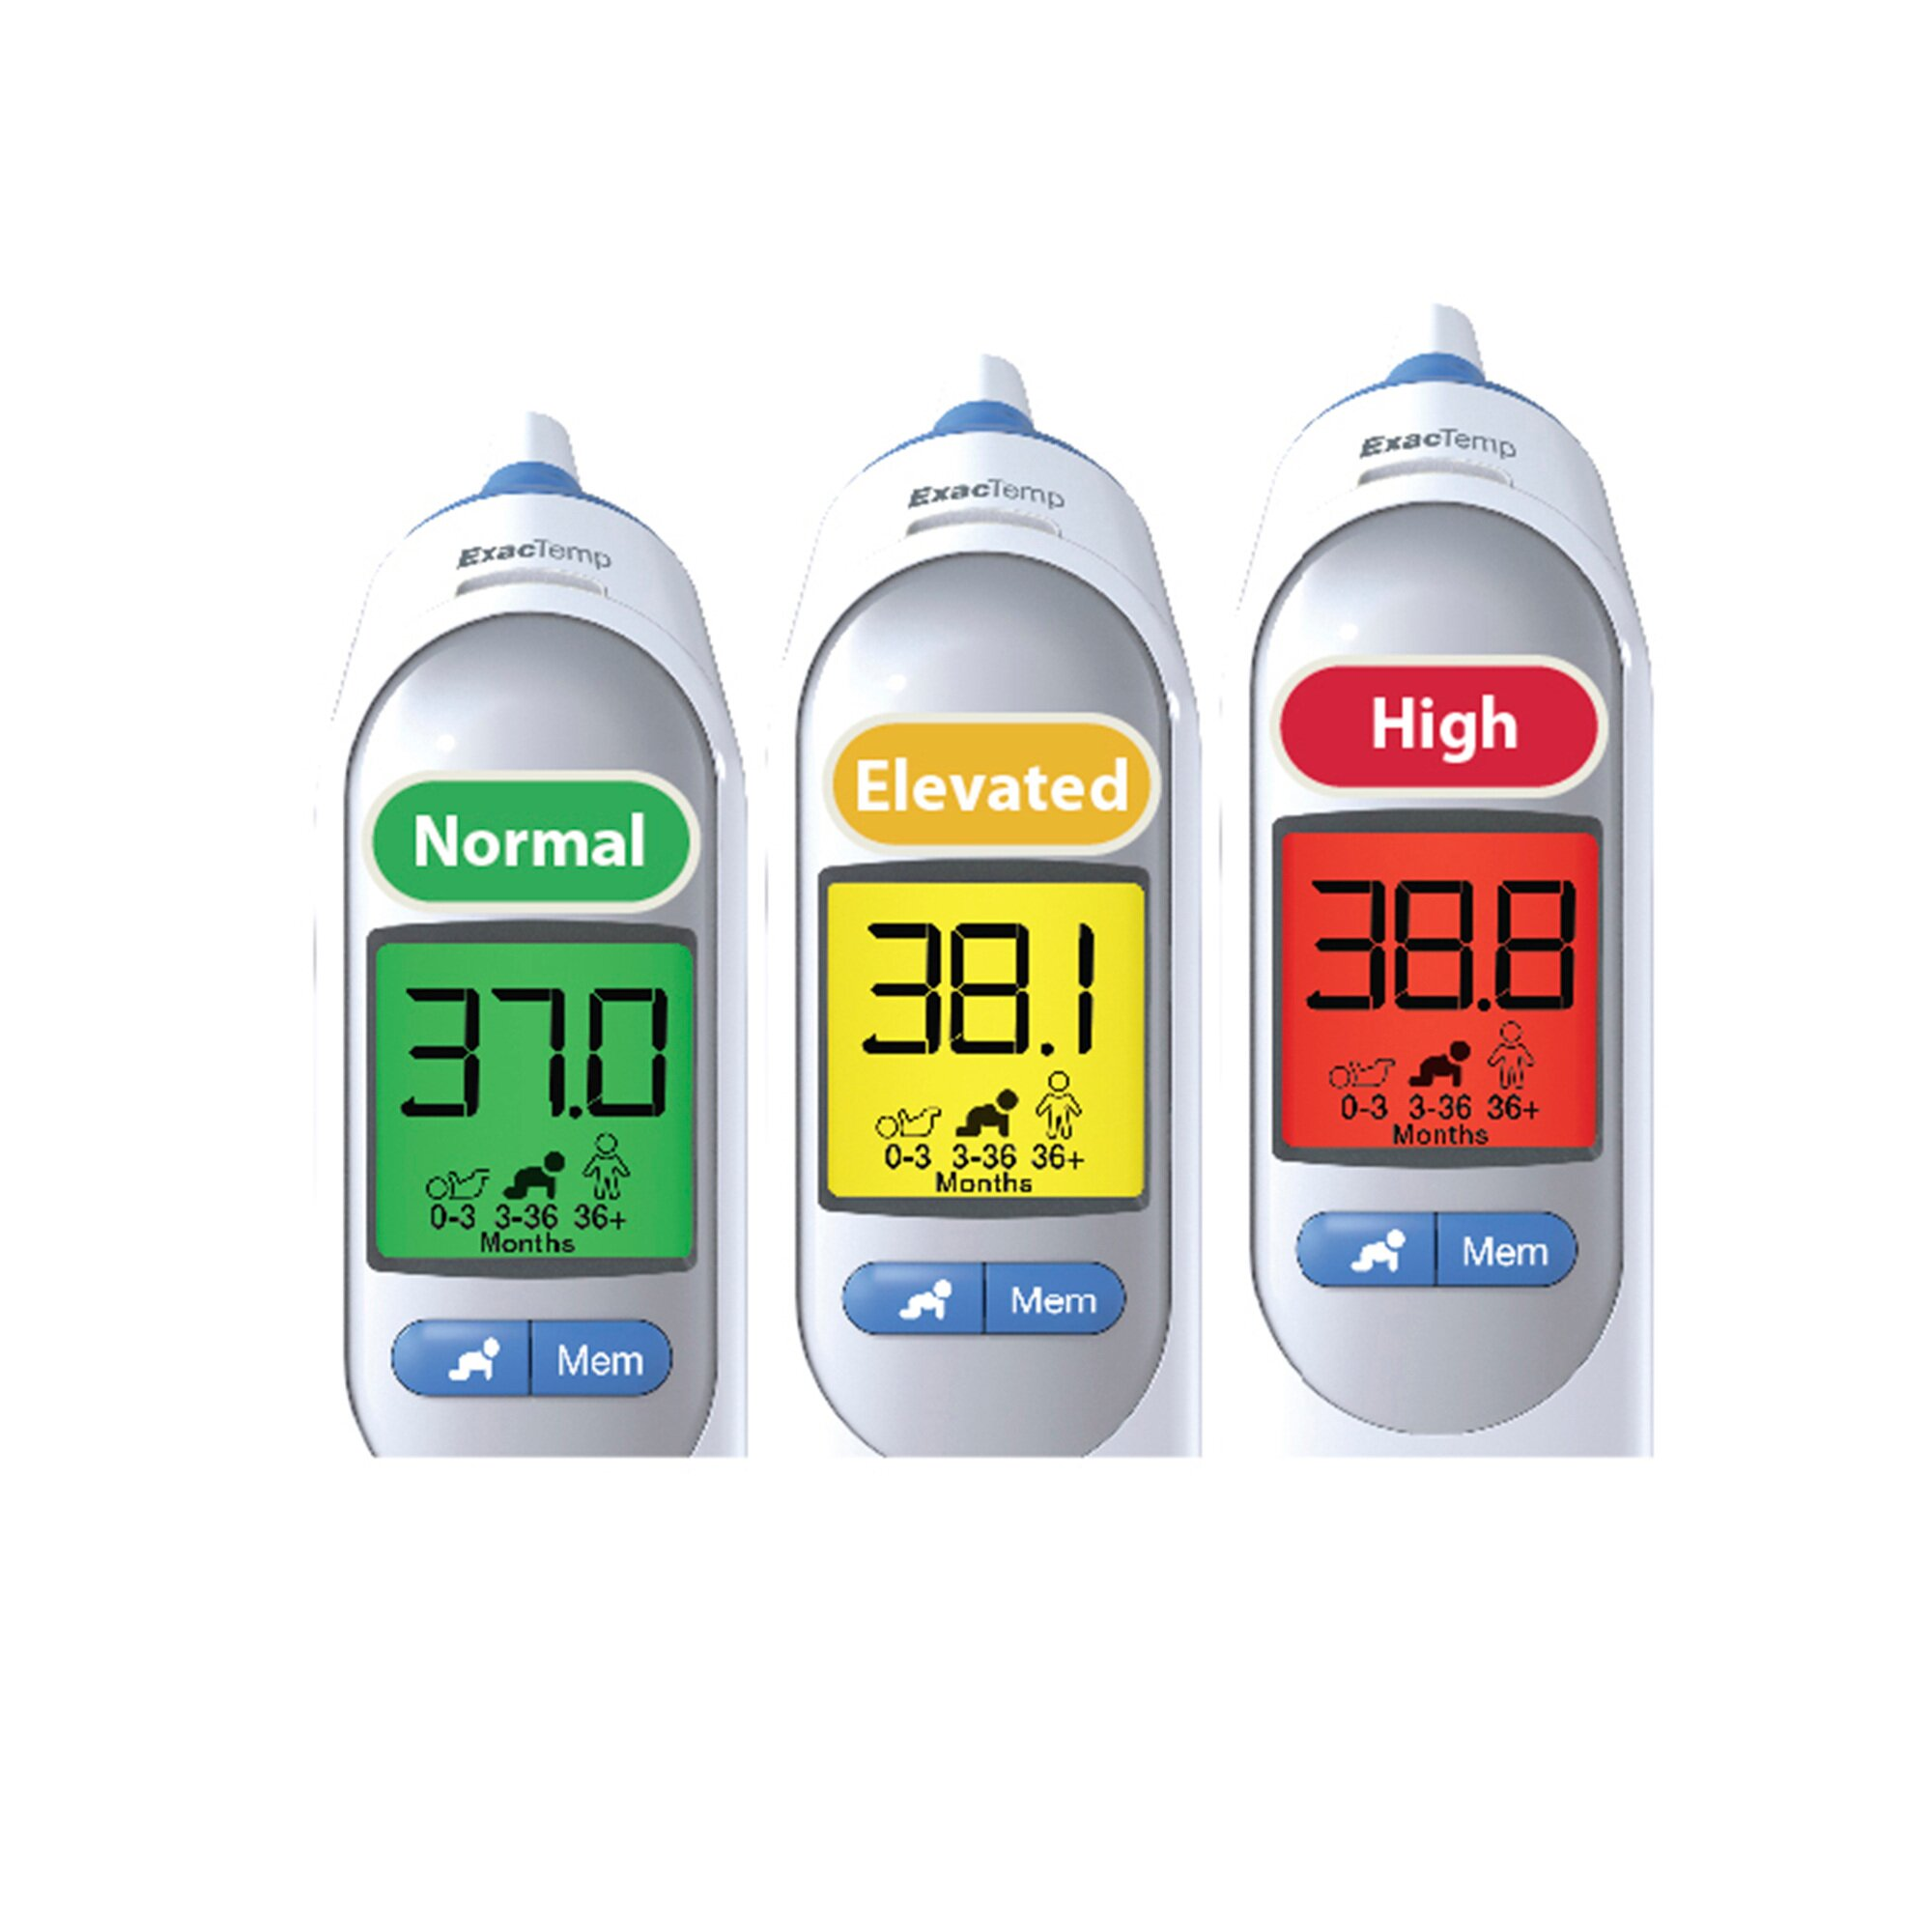 braun-thermoscan-7-ohrthermometer